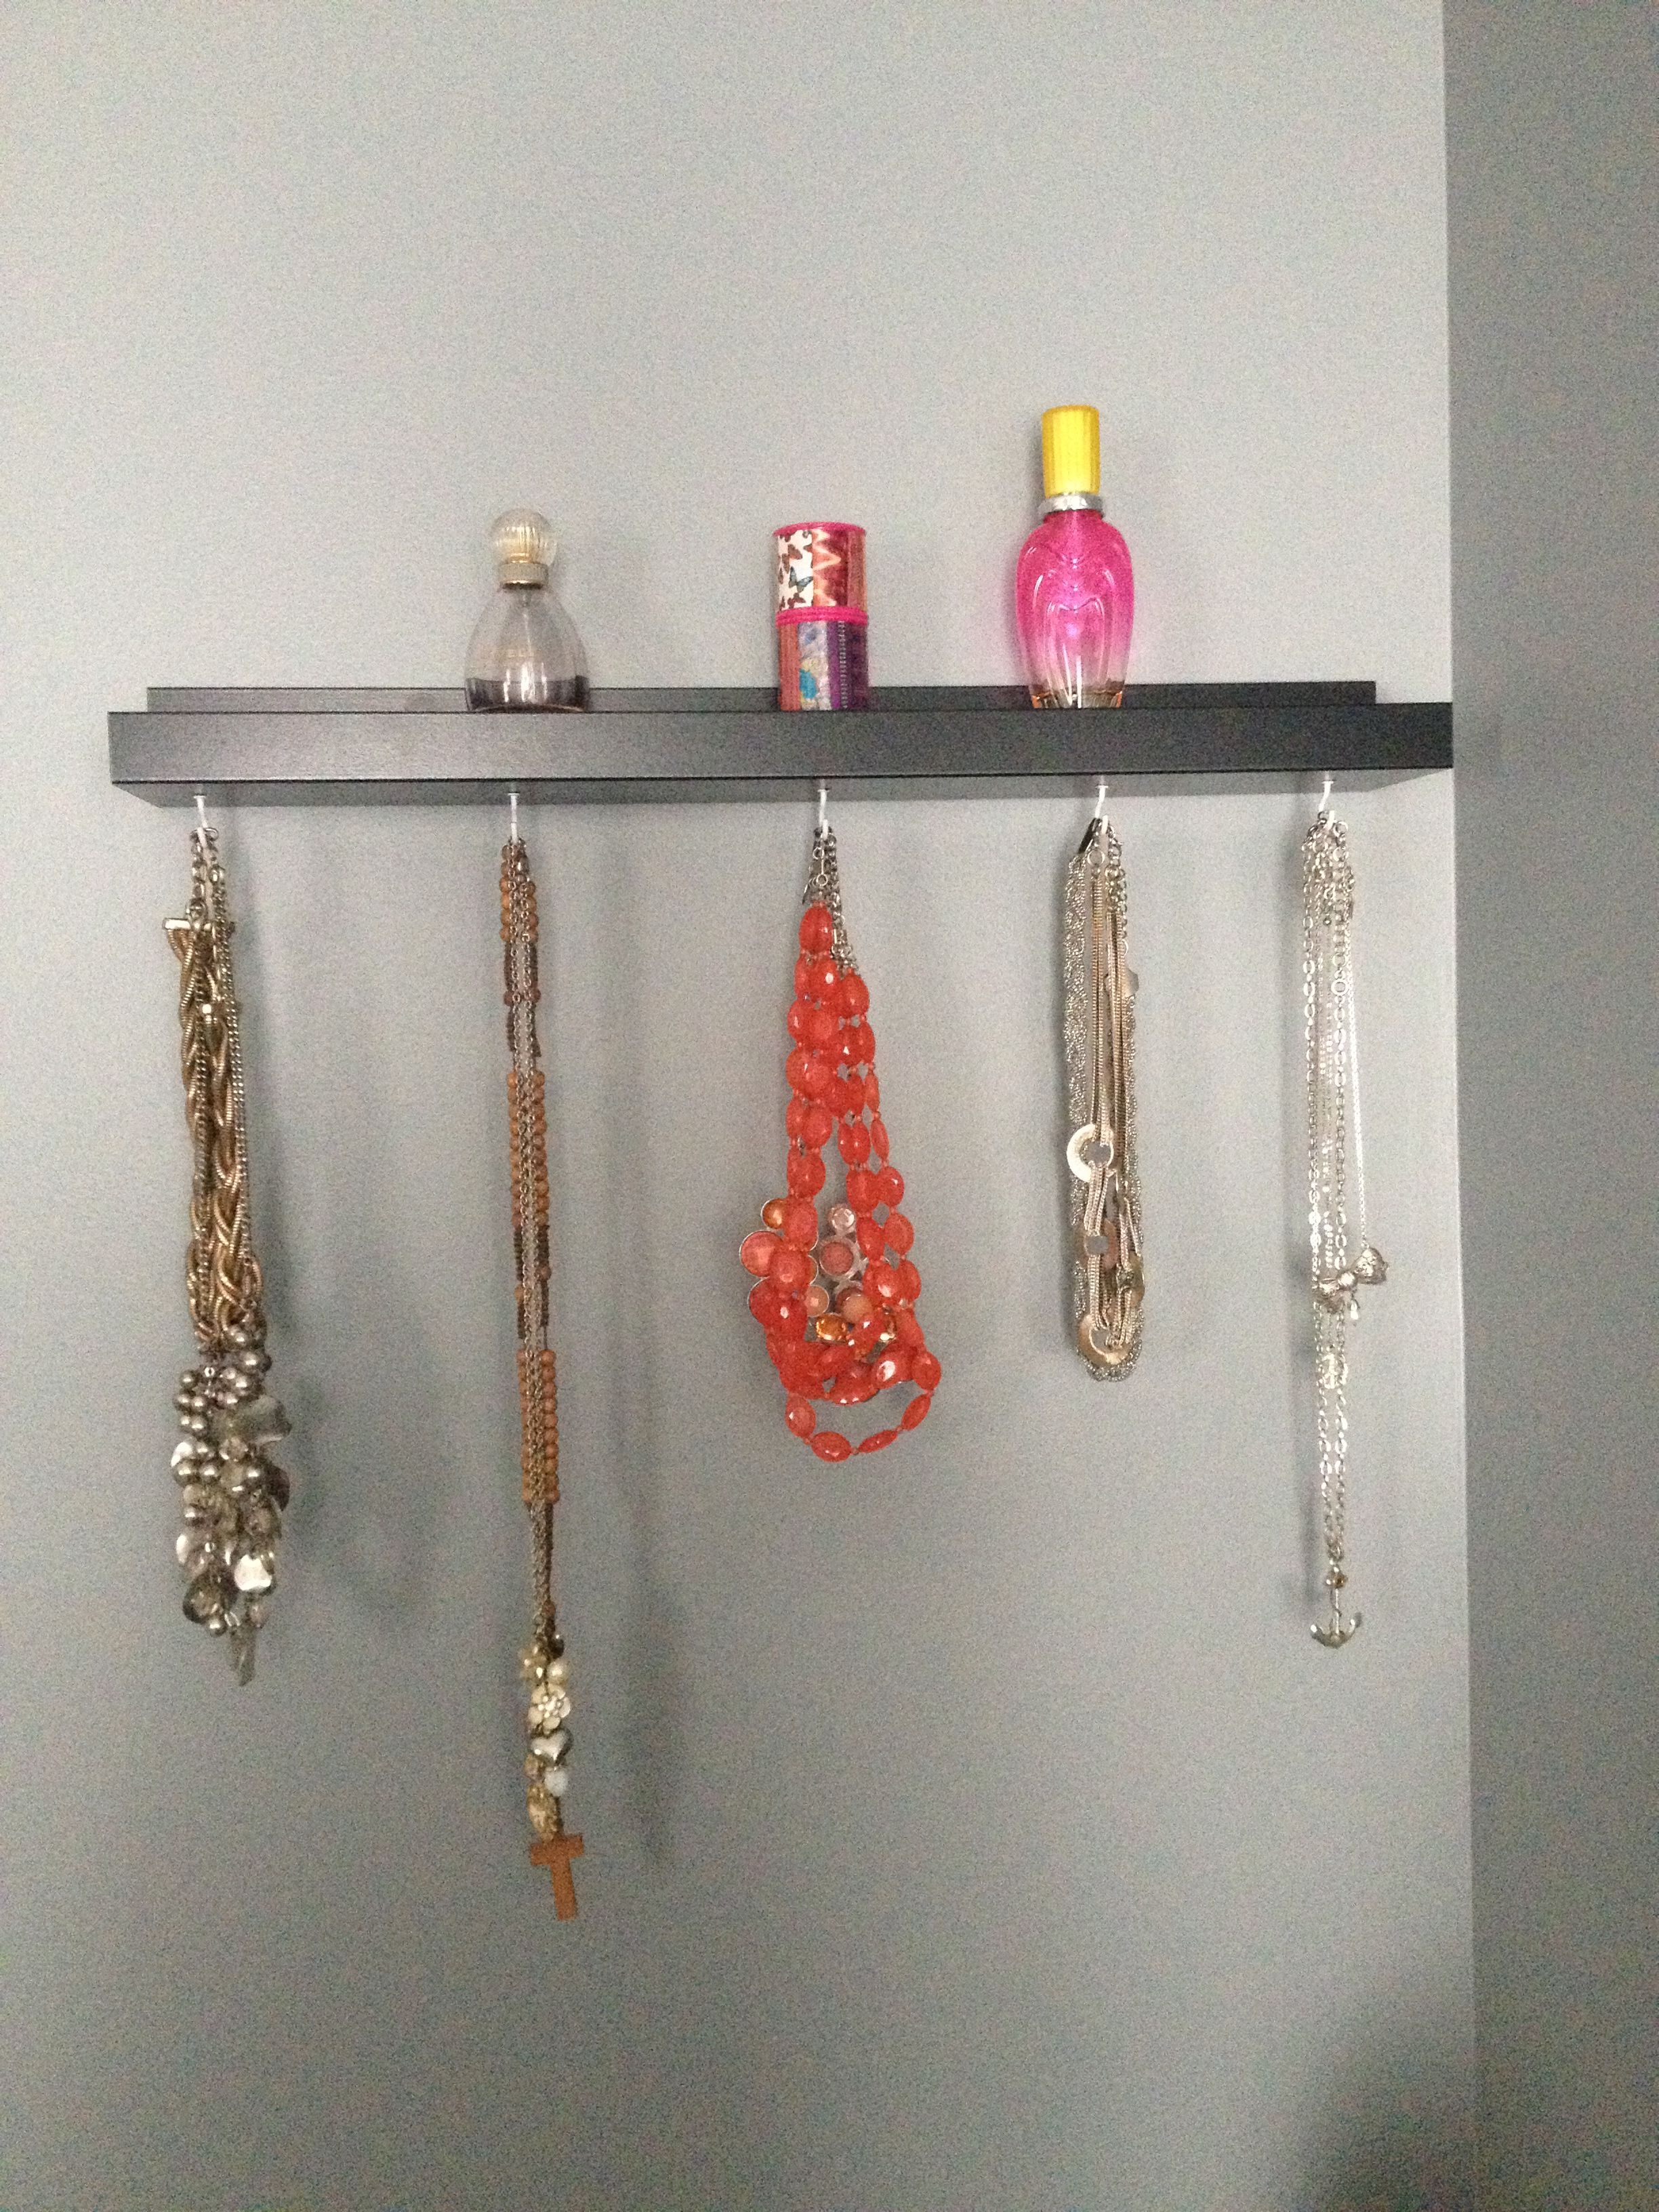 sherichelle ikea ribba picture ledges are awesome they have so